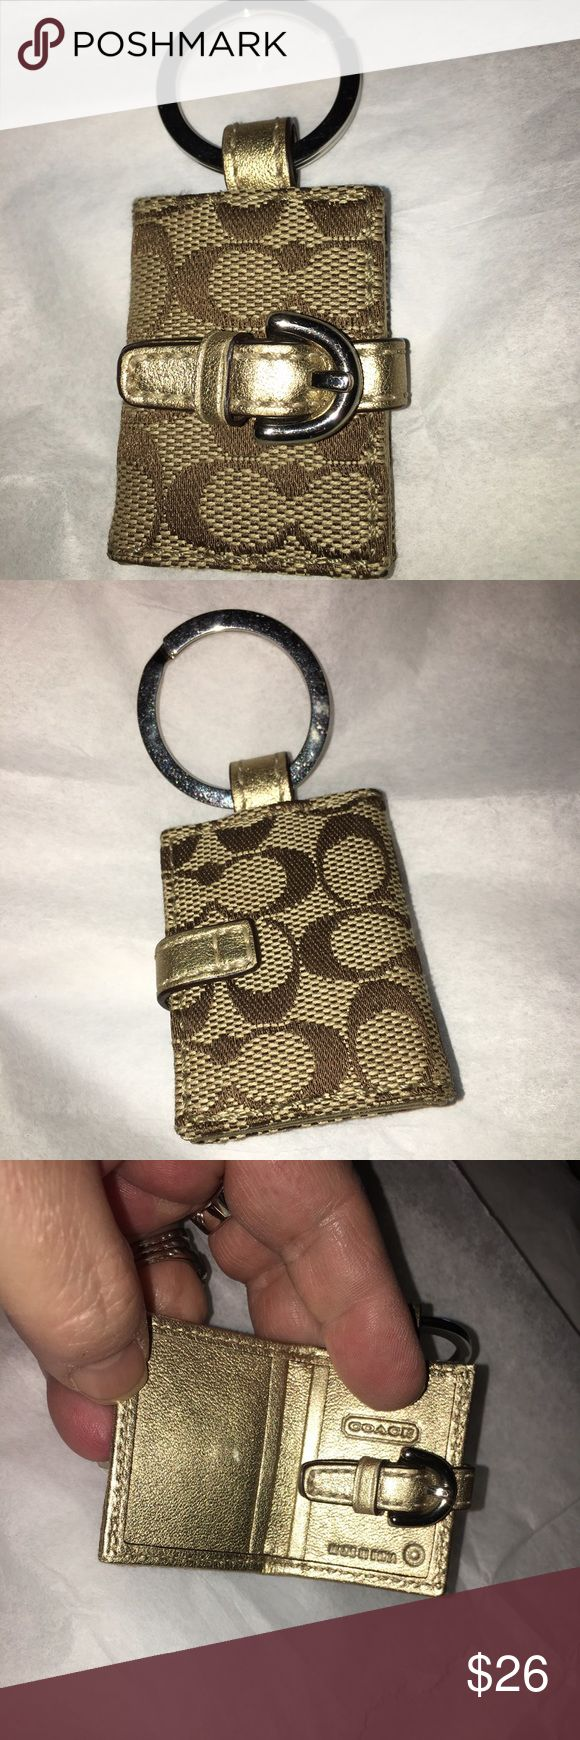 """NWOT Coach Magnetic Key Chain Brand New Coach Key Chain in Tan Signature Canvas opens up to a clear slip pocket for a pic, snaps closed and has silver hardware measures 3.5"""" in length Coach Accessories Key & Card Holders"""